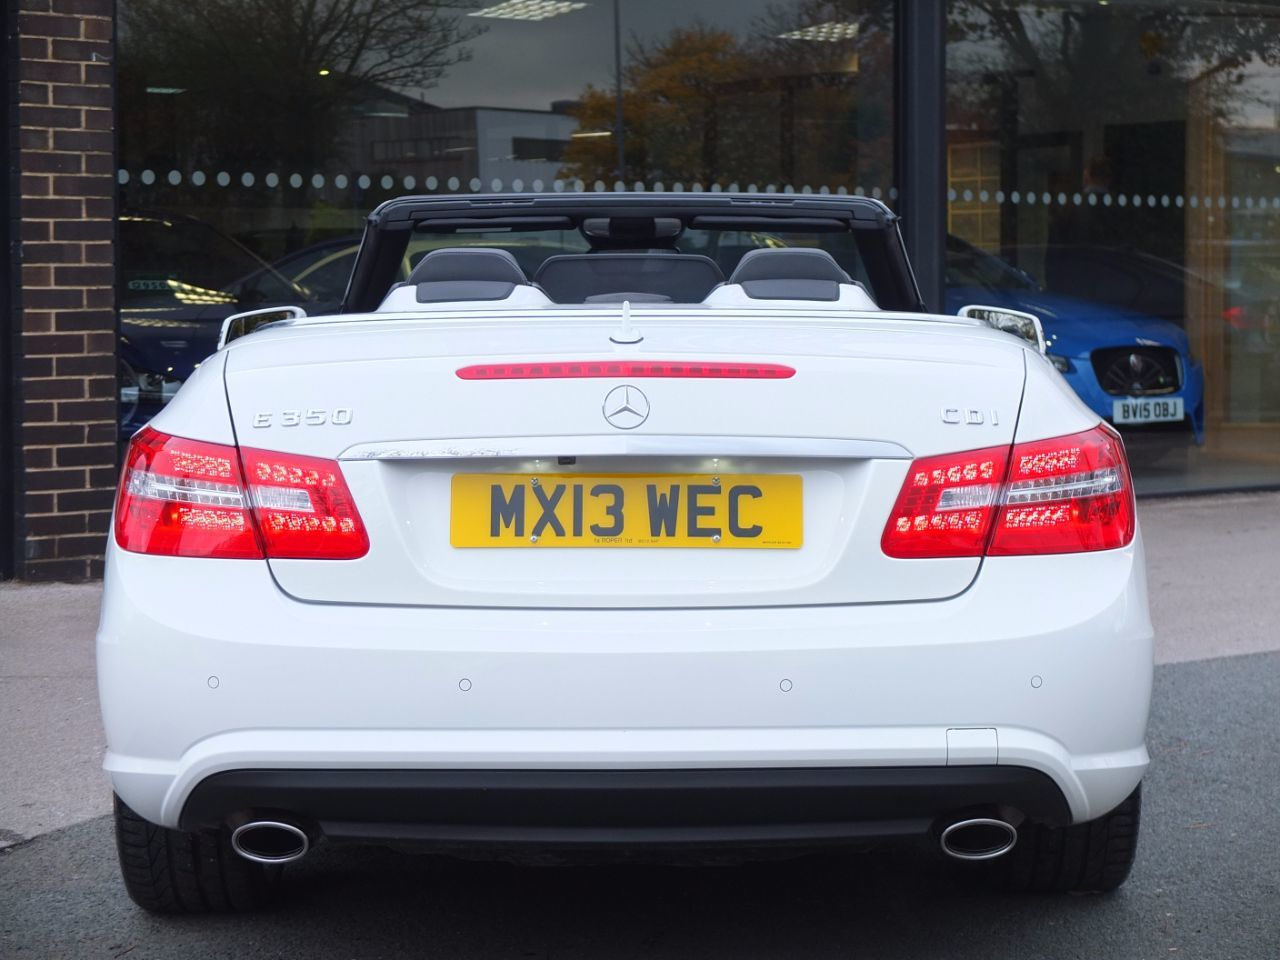 Mercedes-Benz E Class 3.0 E350 CDI BlueEFFICIENCY [265] Sport Convertible Auto Convertible Diesel Polar White